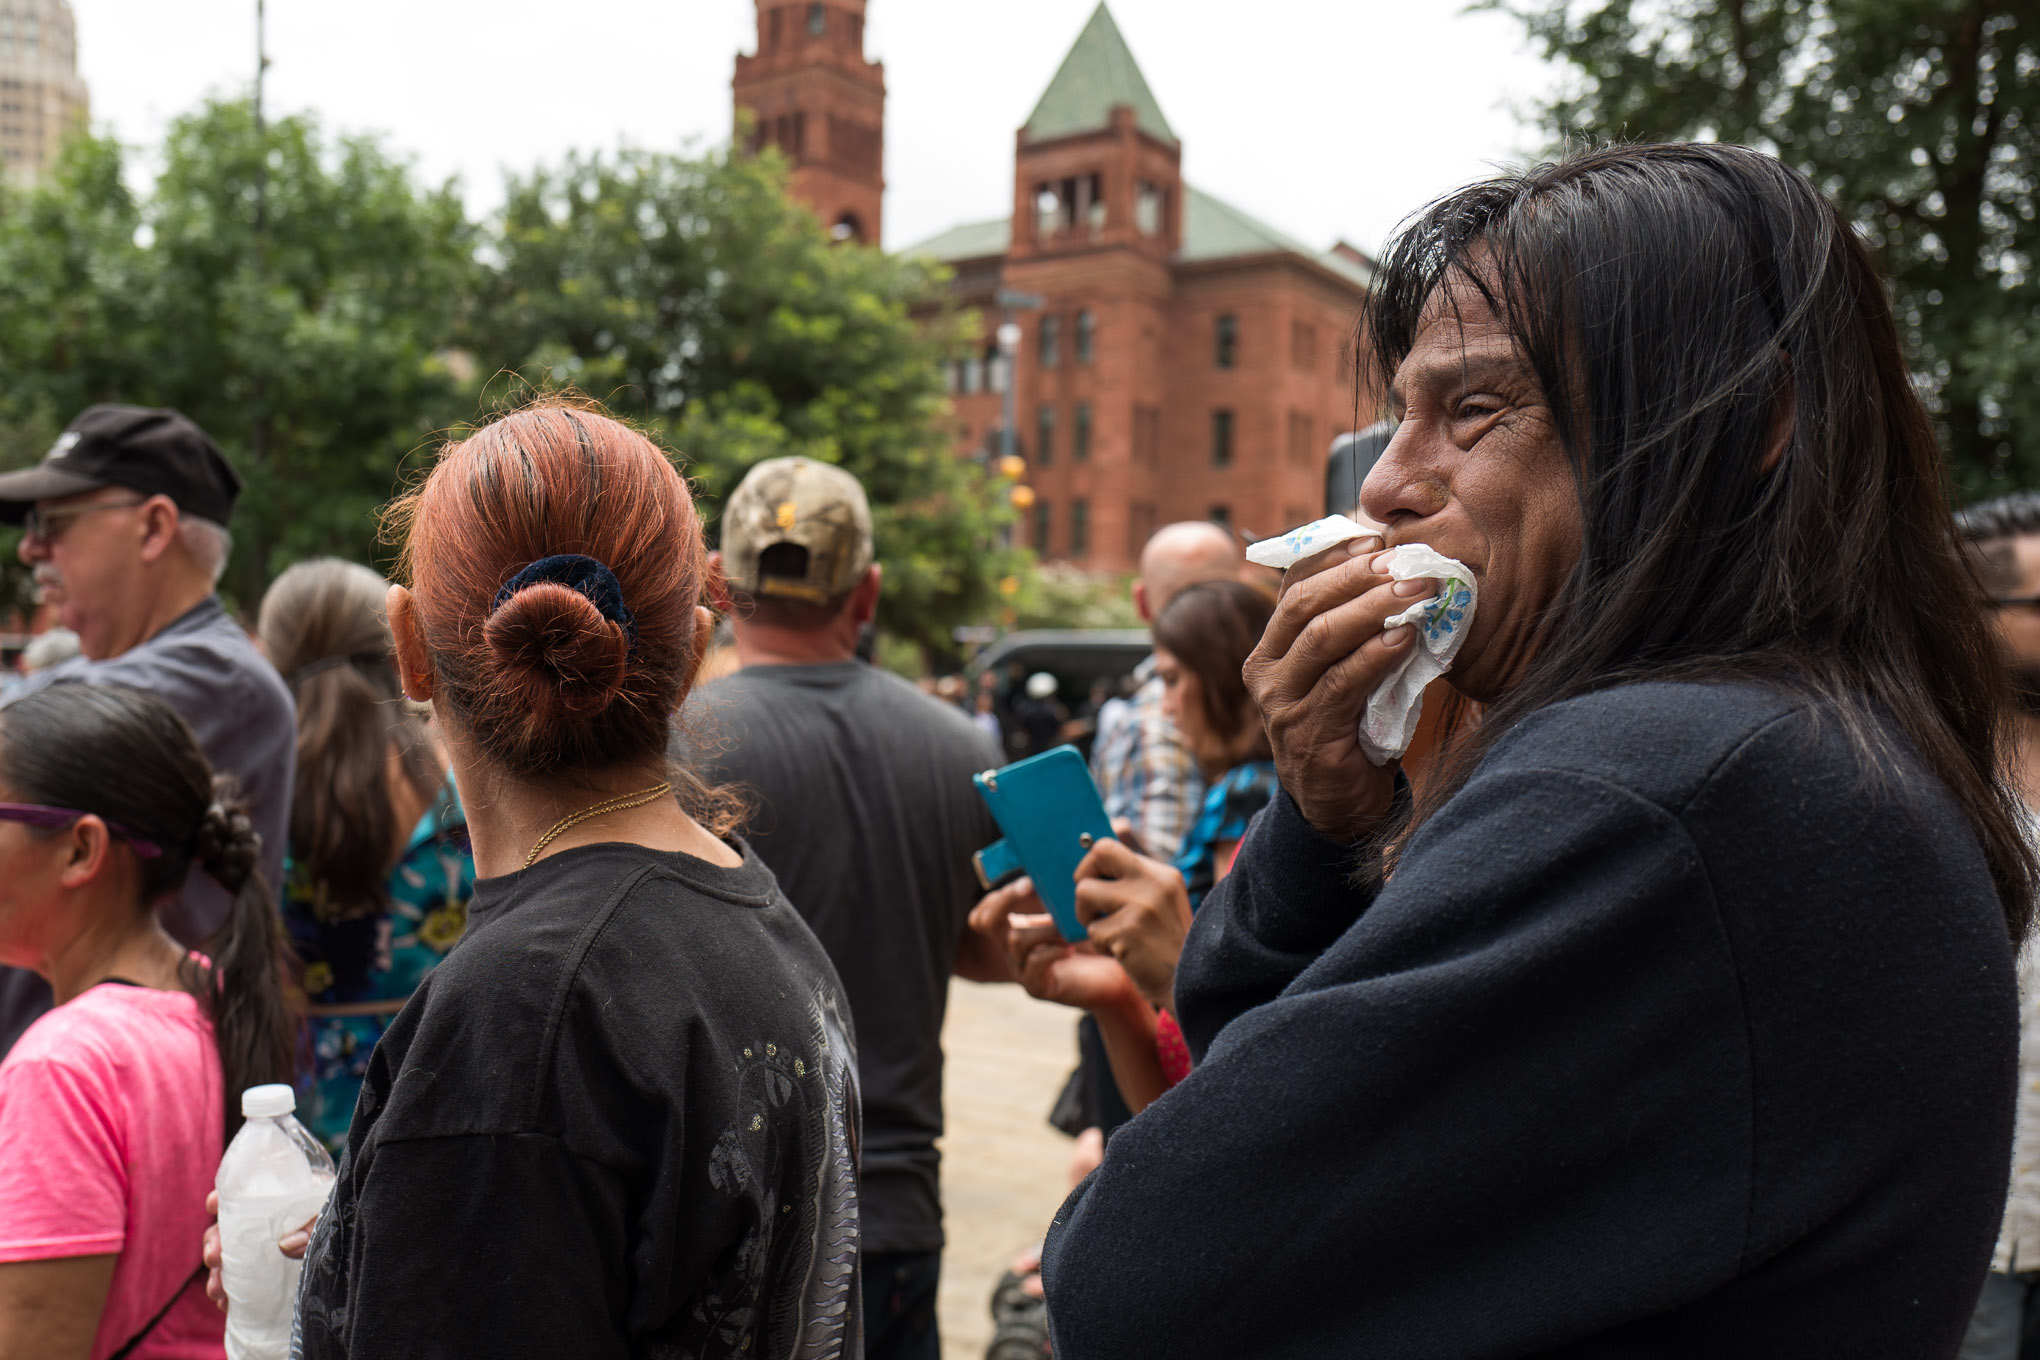 An attendee cries as the hearse carrying Emilio Navaira's body arrives. Photo by Scott Ball.